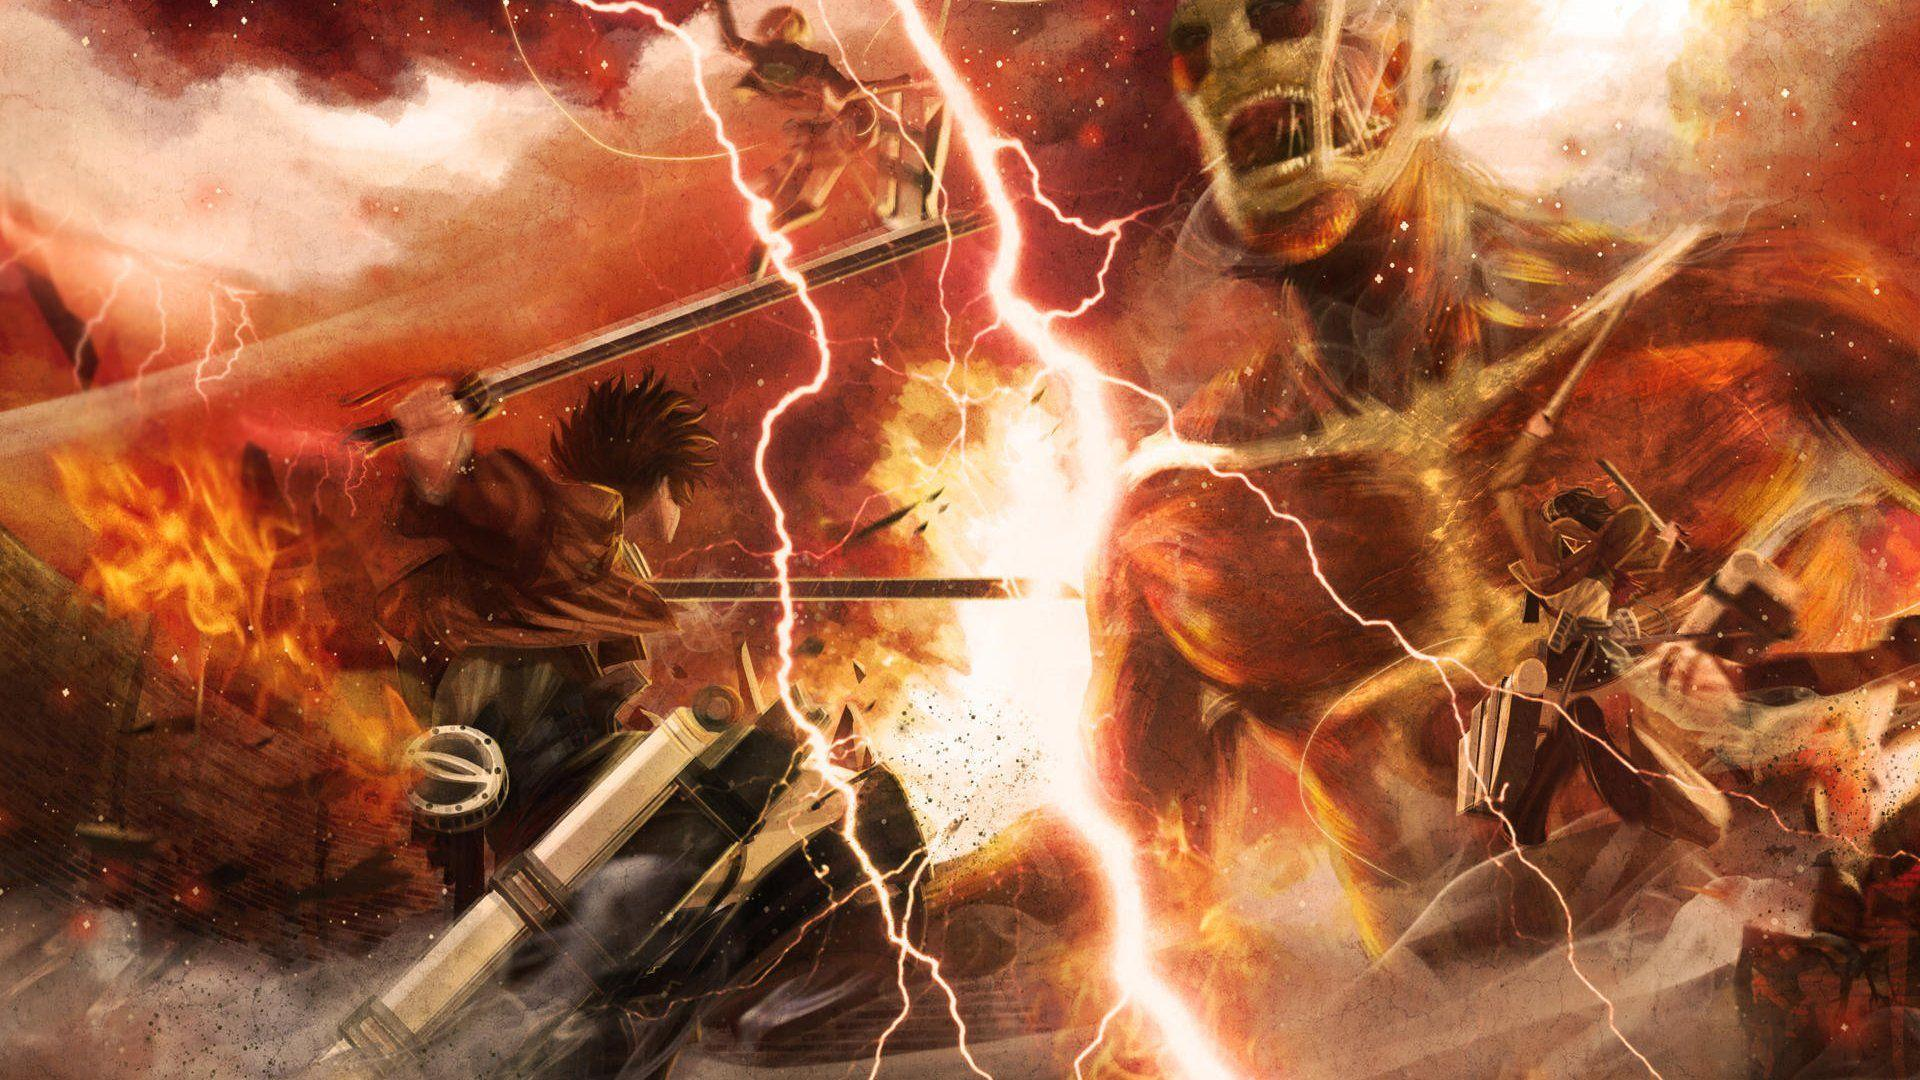 Personalize your ipad by customizing the background image on your device's home or lock screen using your photos or one from the web. Attack On Titan Wallpapers - Wallpaper Cave